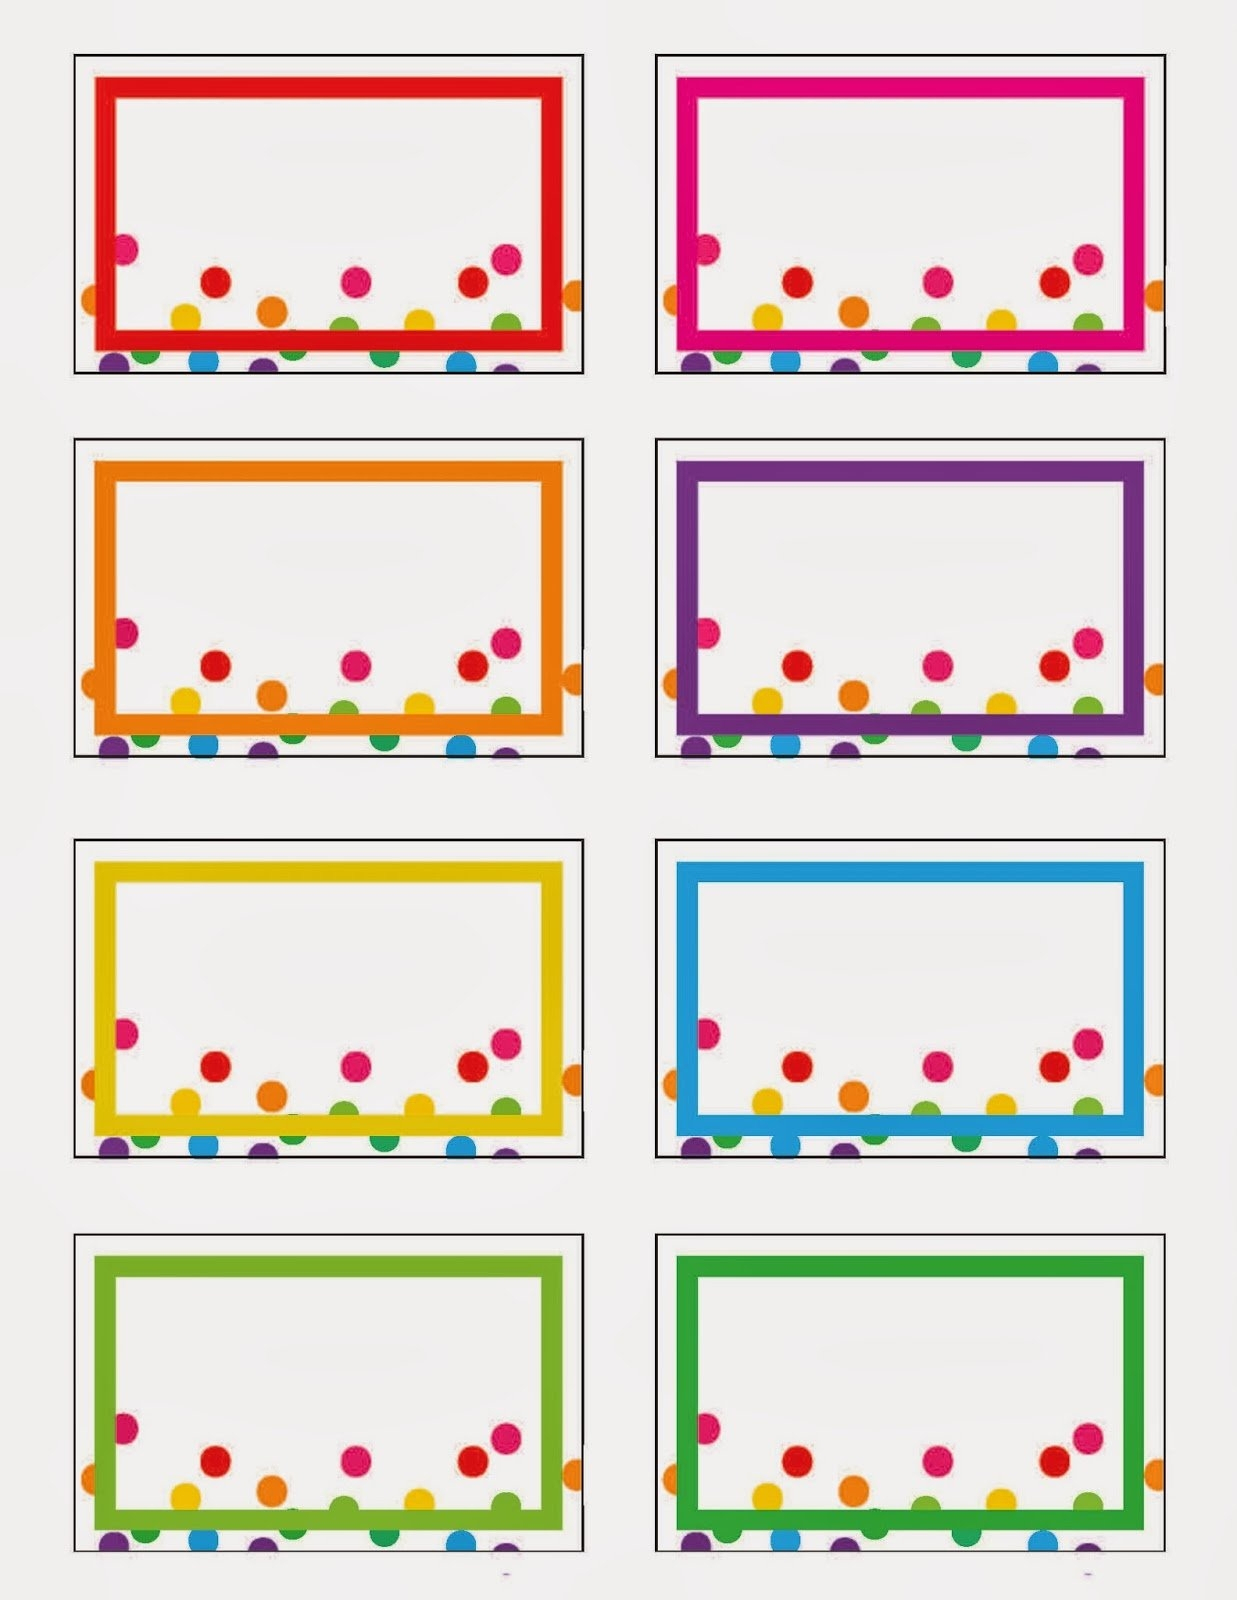 New Name Labels Templates Free - Tim-Lange - Free Printable Name Tags For Preschoolers